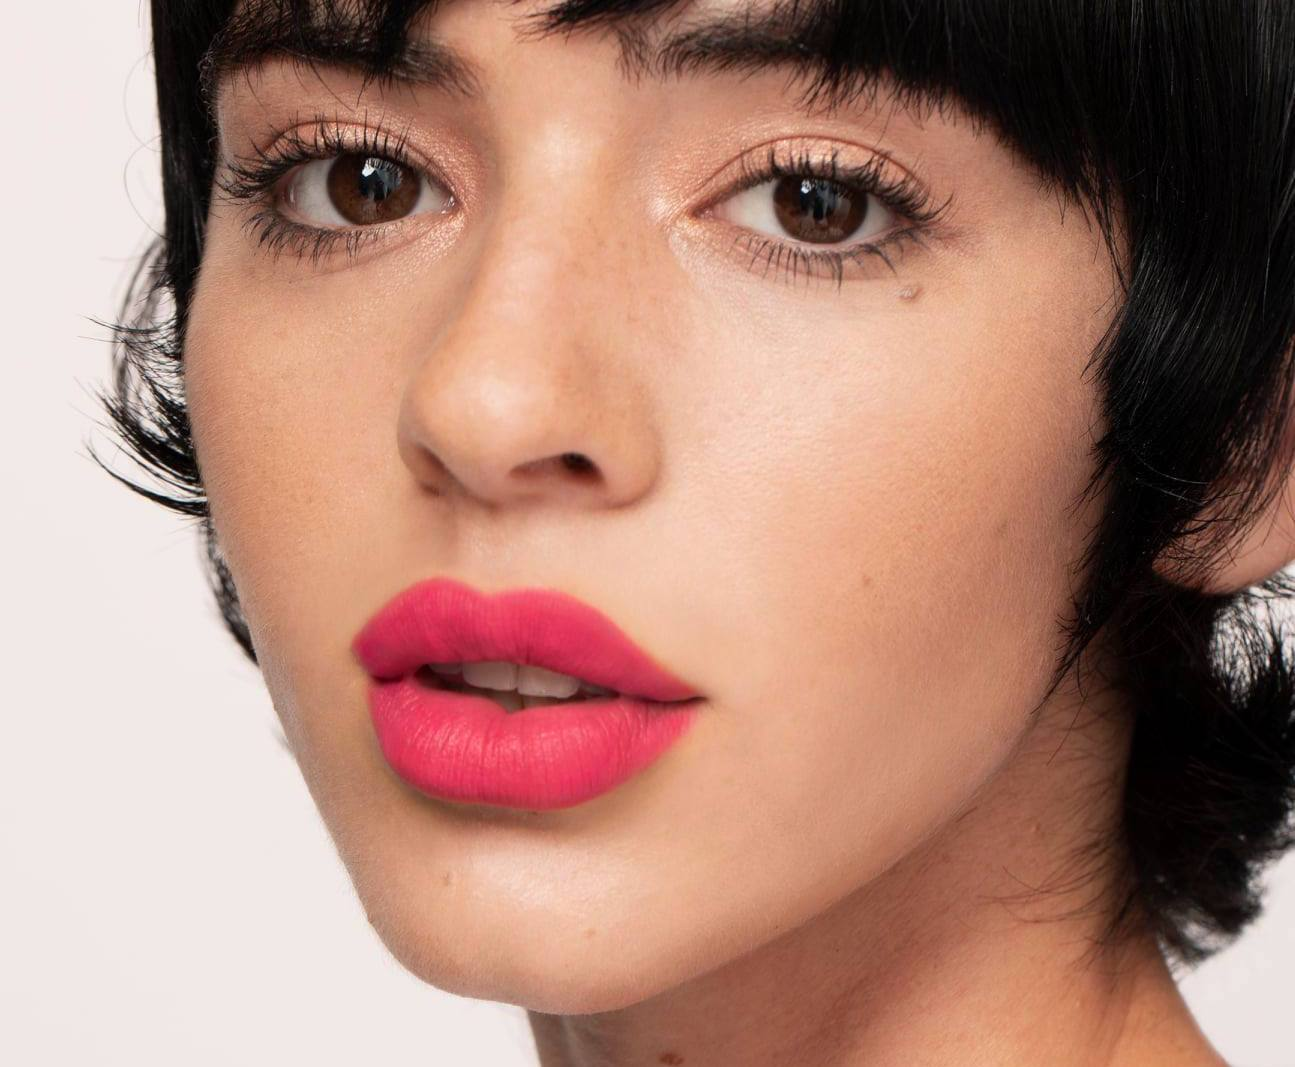 5-cult-lip-liners-everybody-needs-to-own-(and-8-tips-on-how-to-use-them)